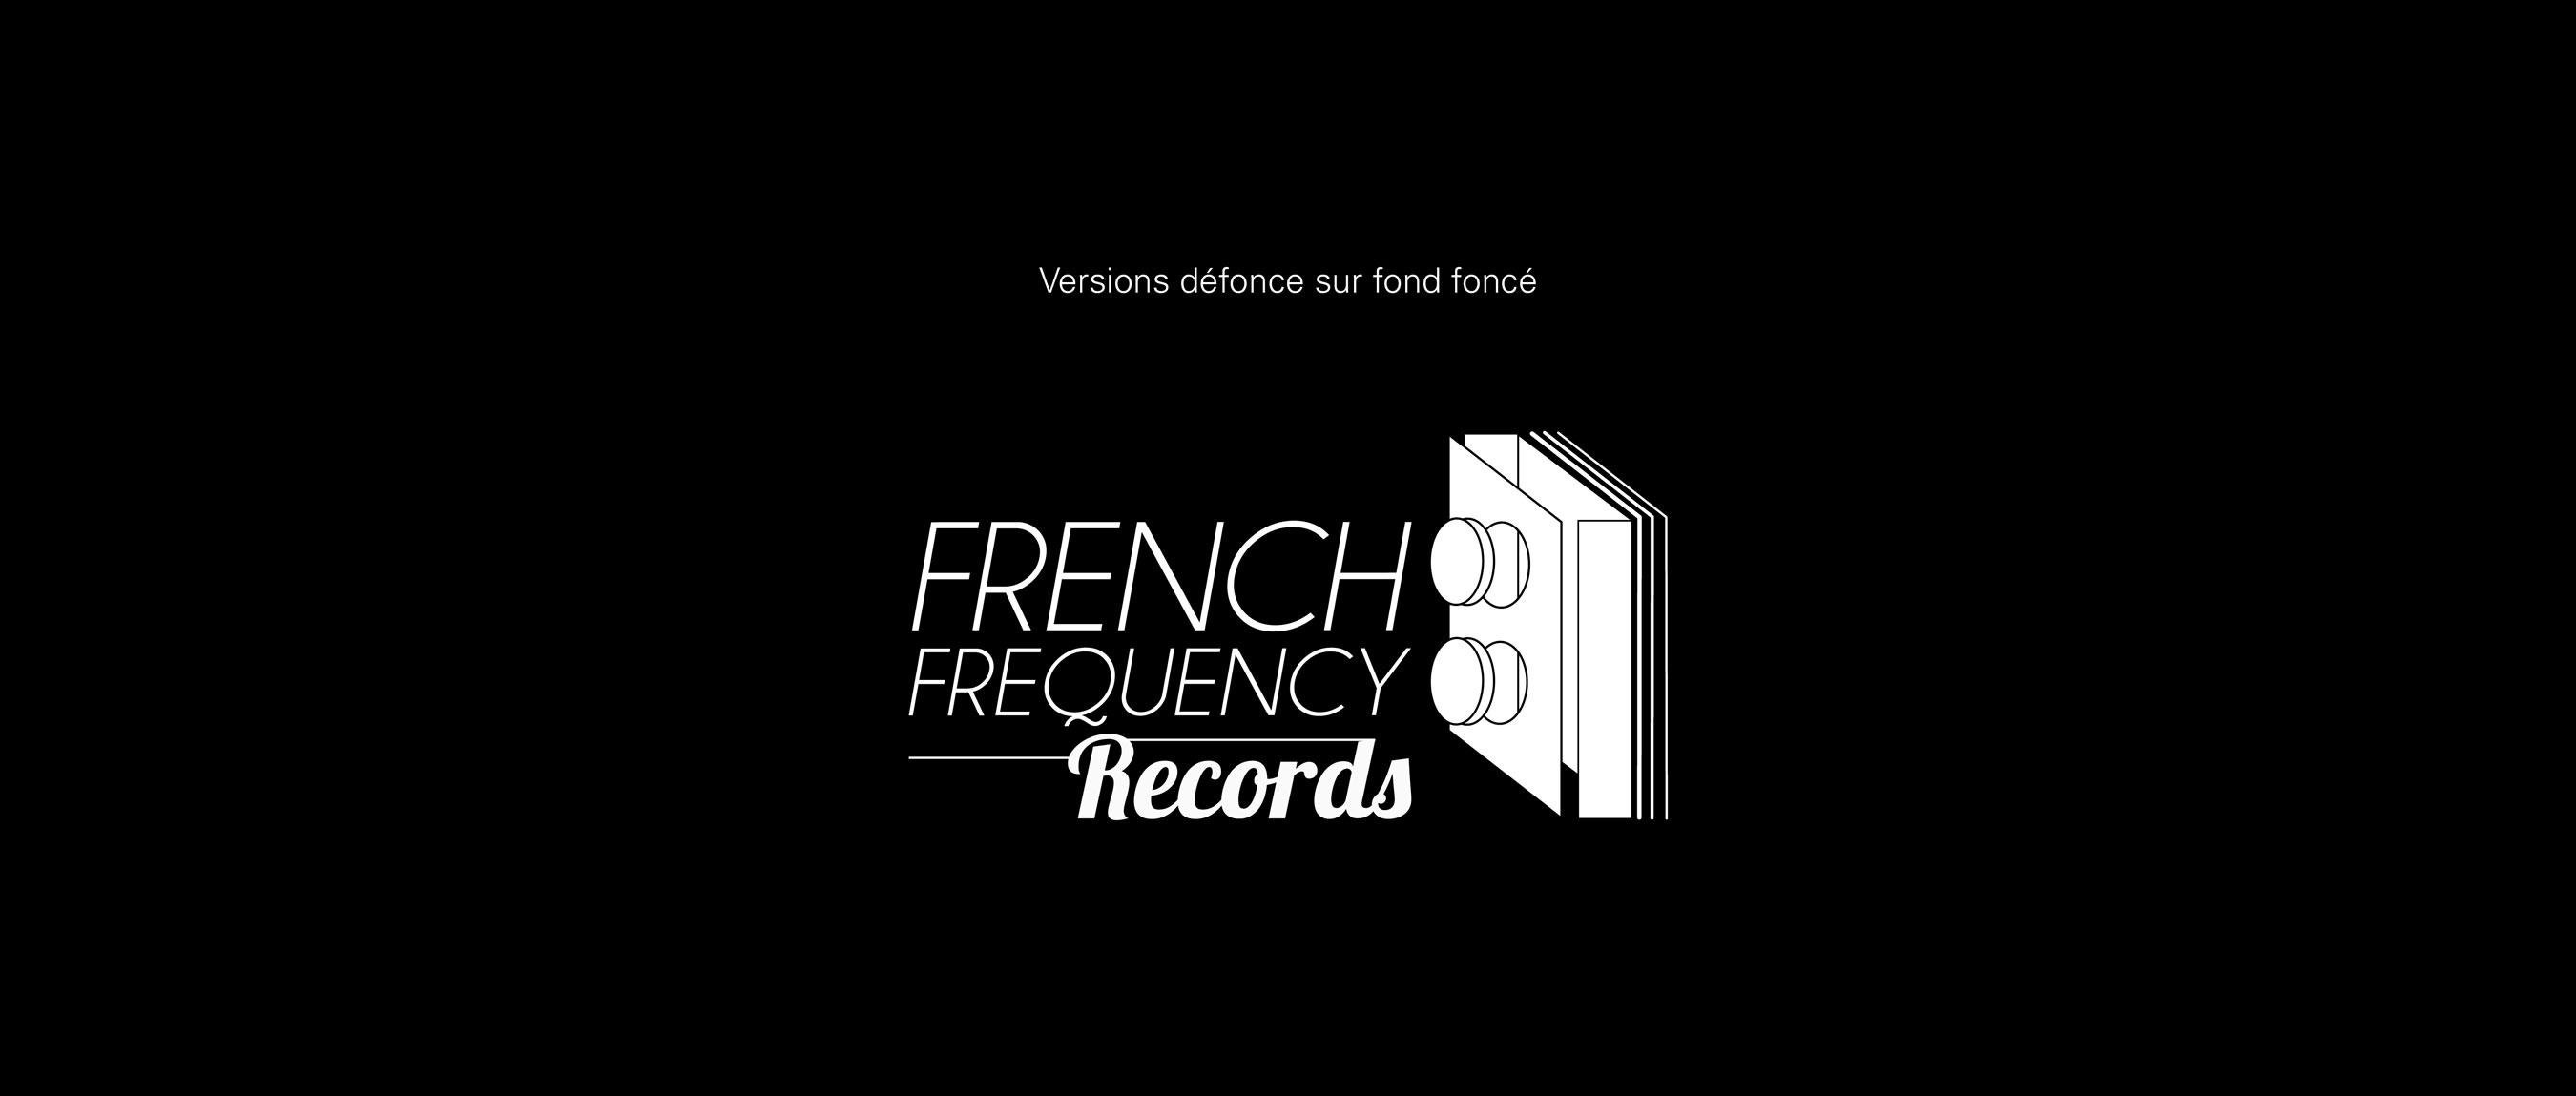 French Frequency Records 2c